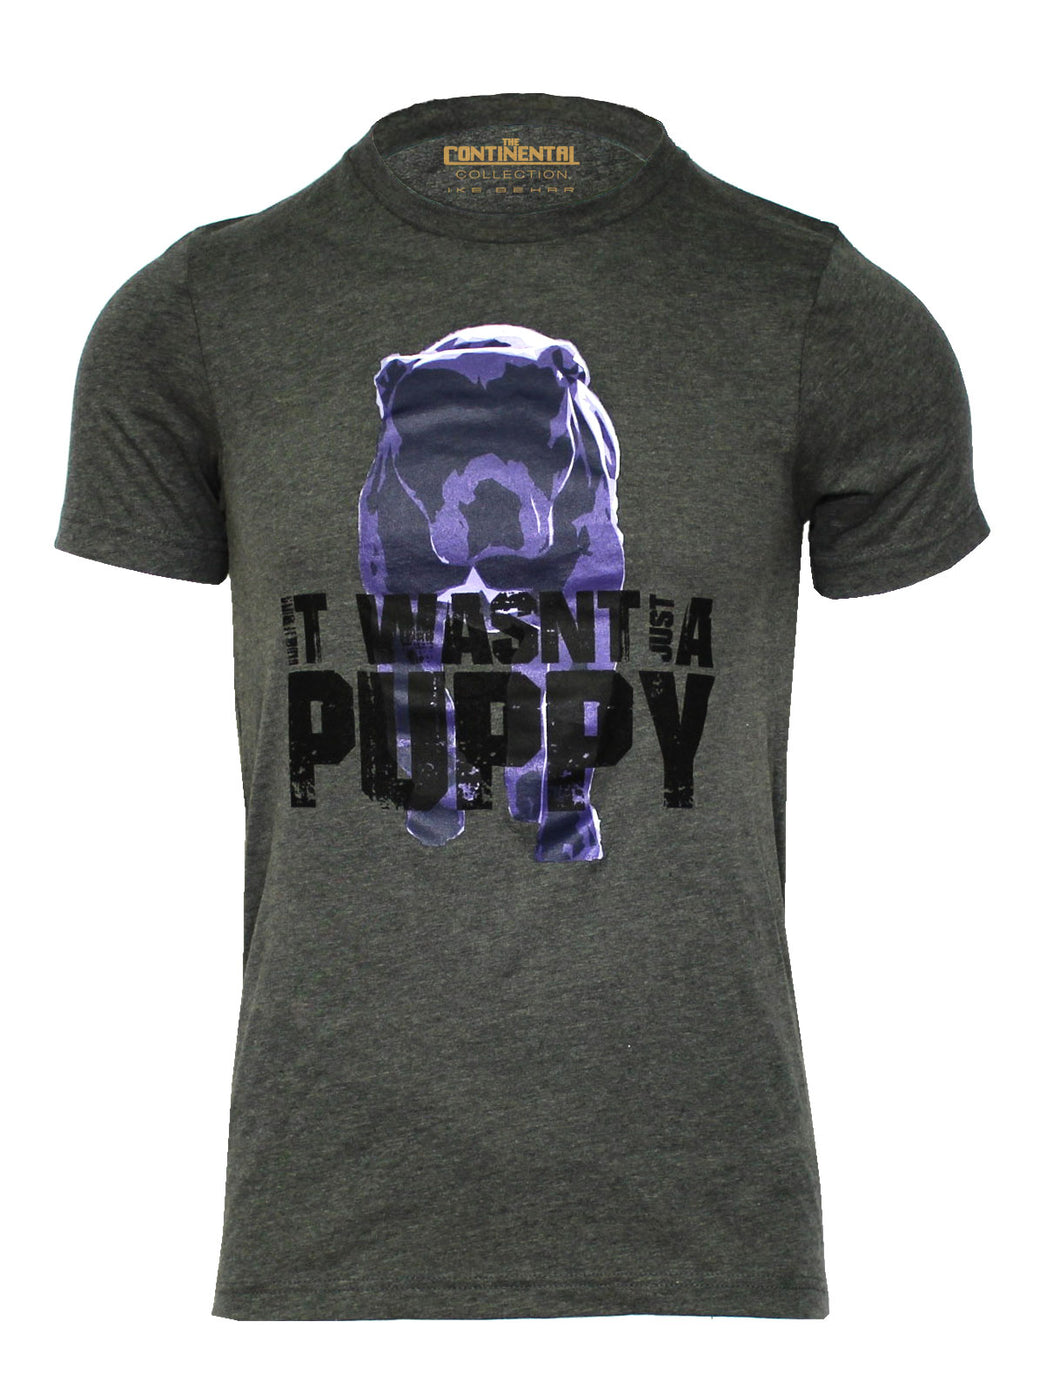 Puppy - Continental Collection T-Shirt